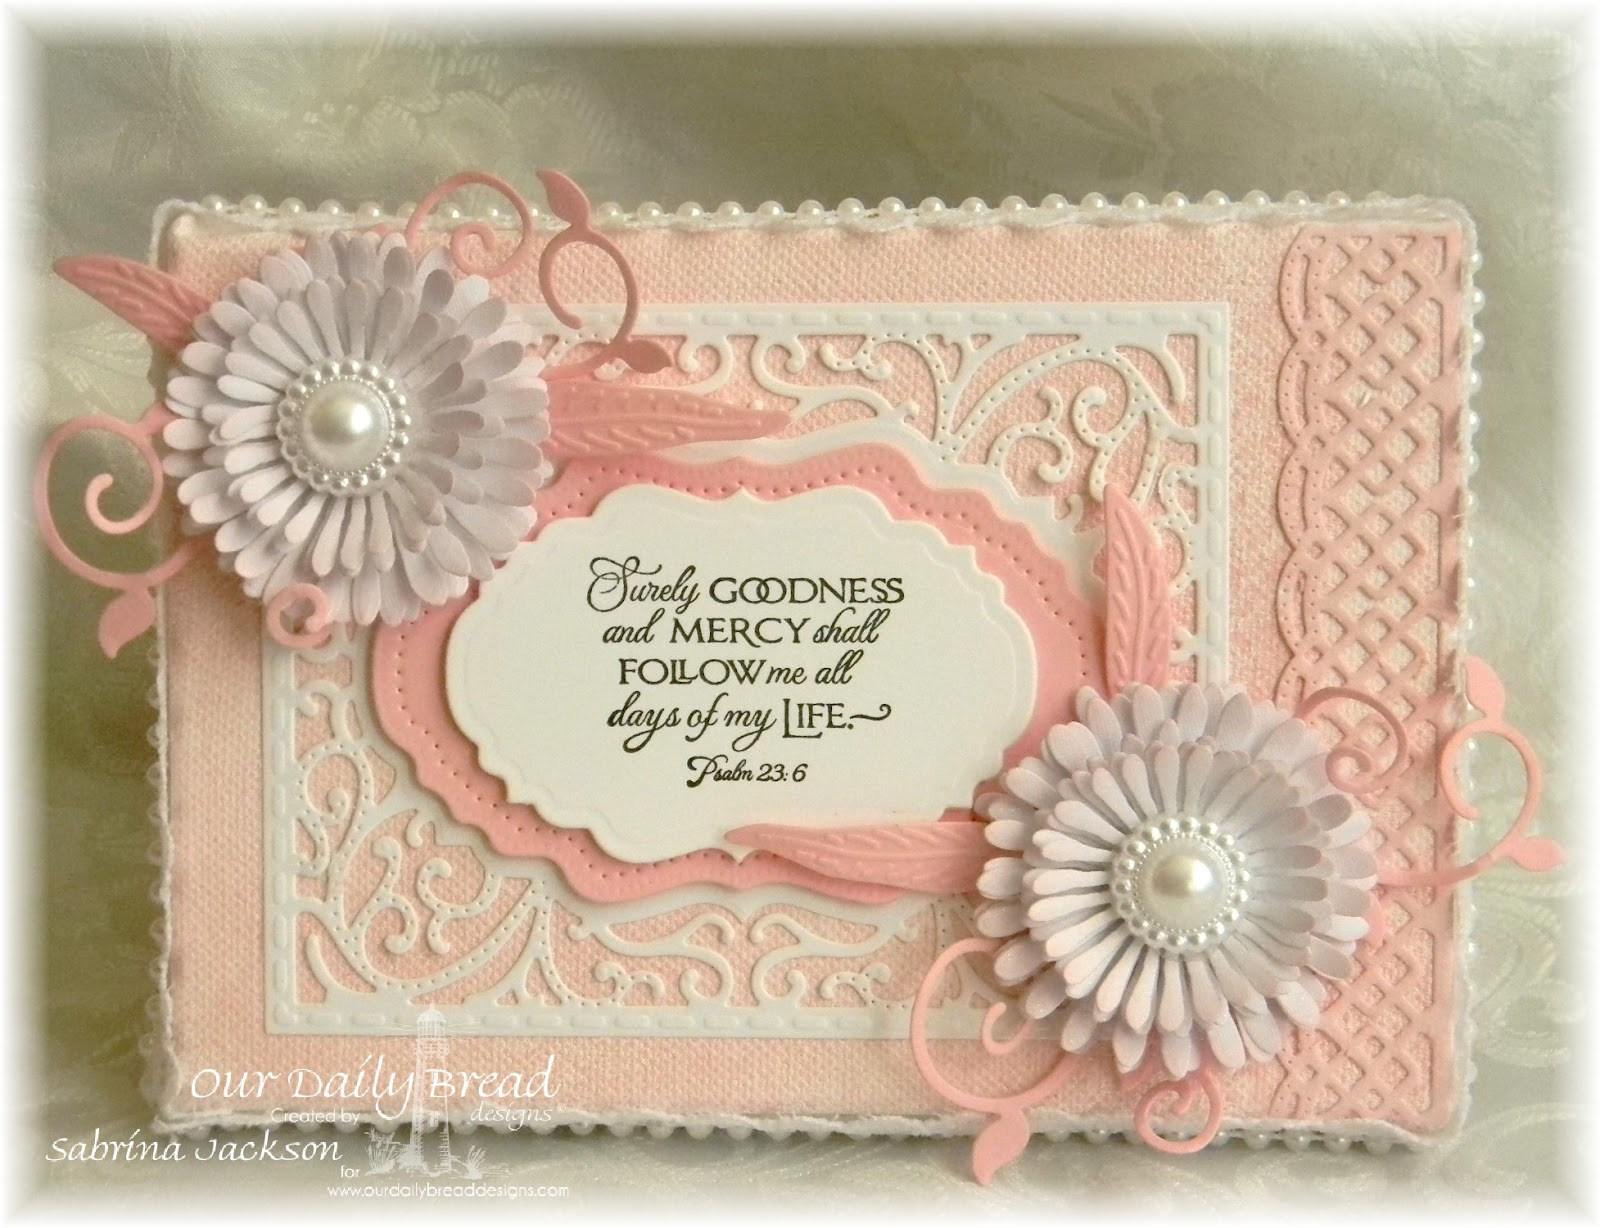 Stamps - Our Daily Bread Designs Cherry Blossom, ODBD Custom Asters and Leaves Die, ODBD Custom Beautiful Borders Dies, ODBD Custom Vintage Flourish Pattern Die, ODBD Custom Vintage Labels Die, ODBD Custom Fancy Foliage Die